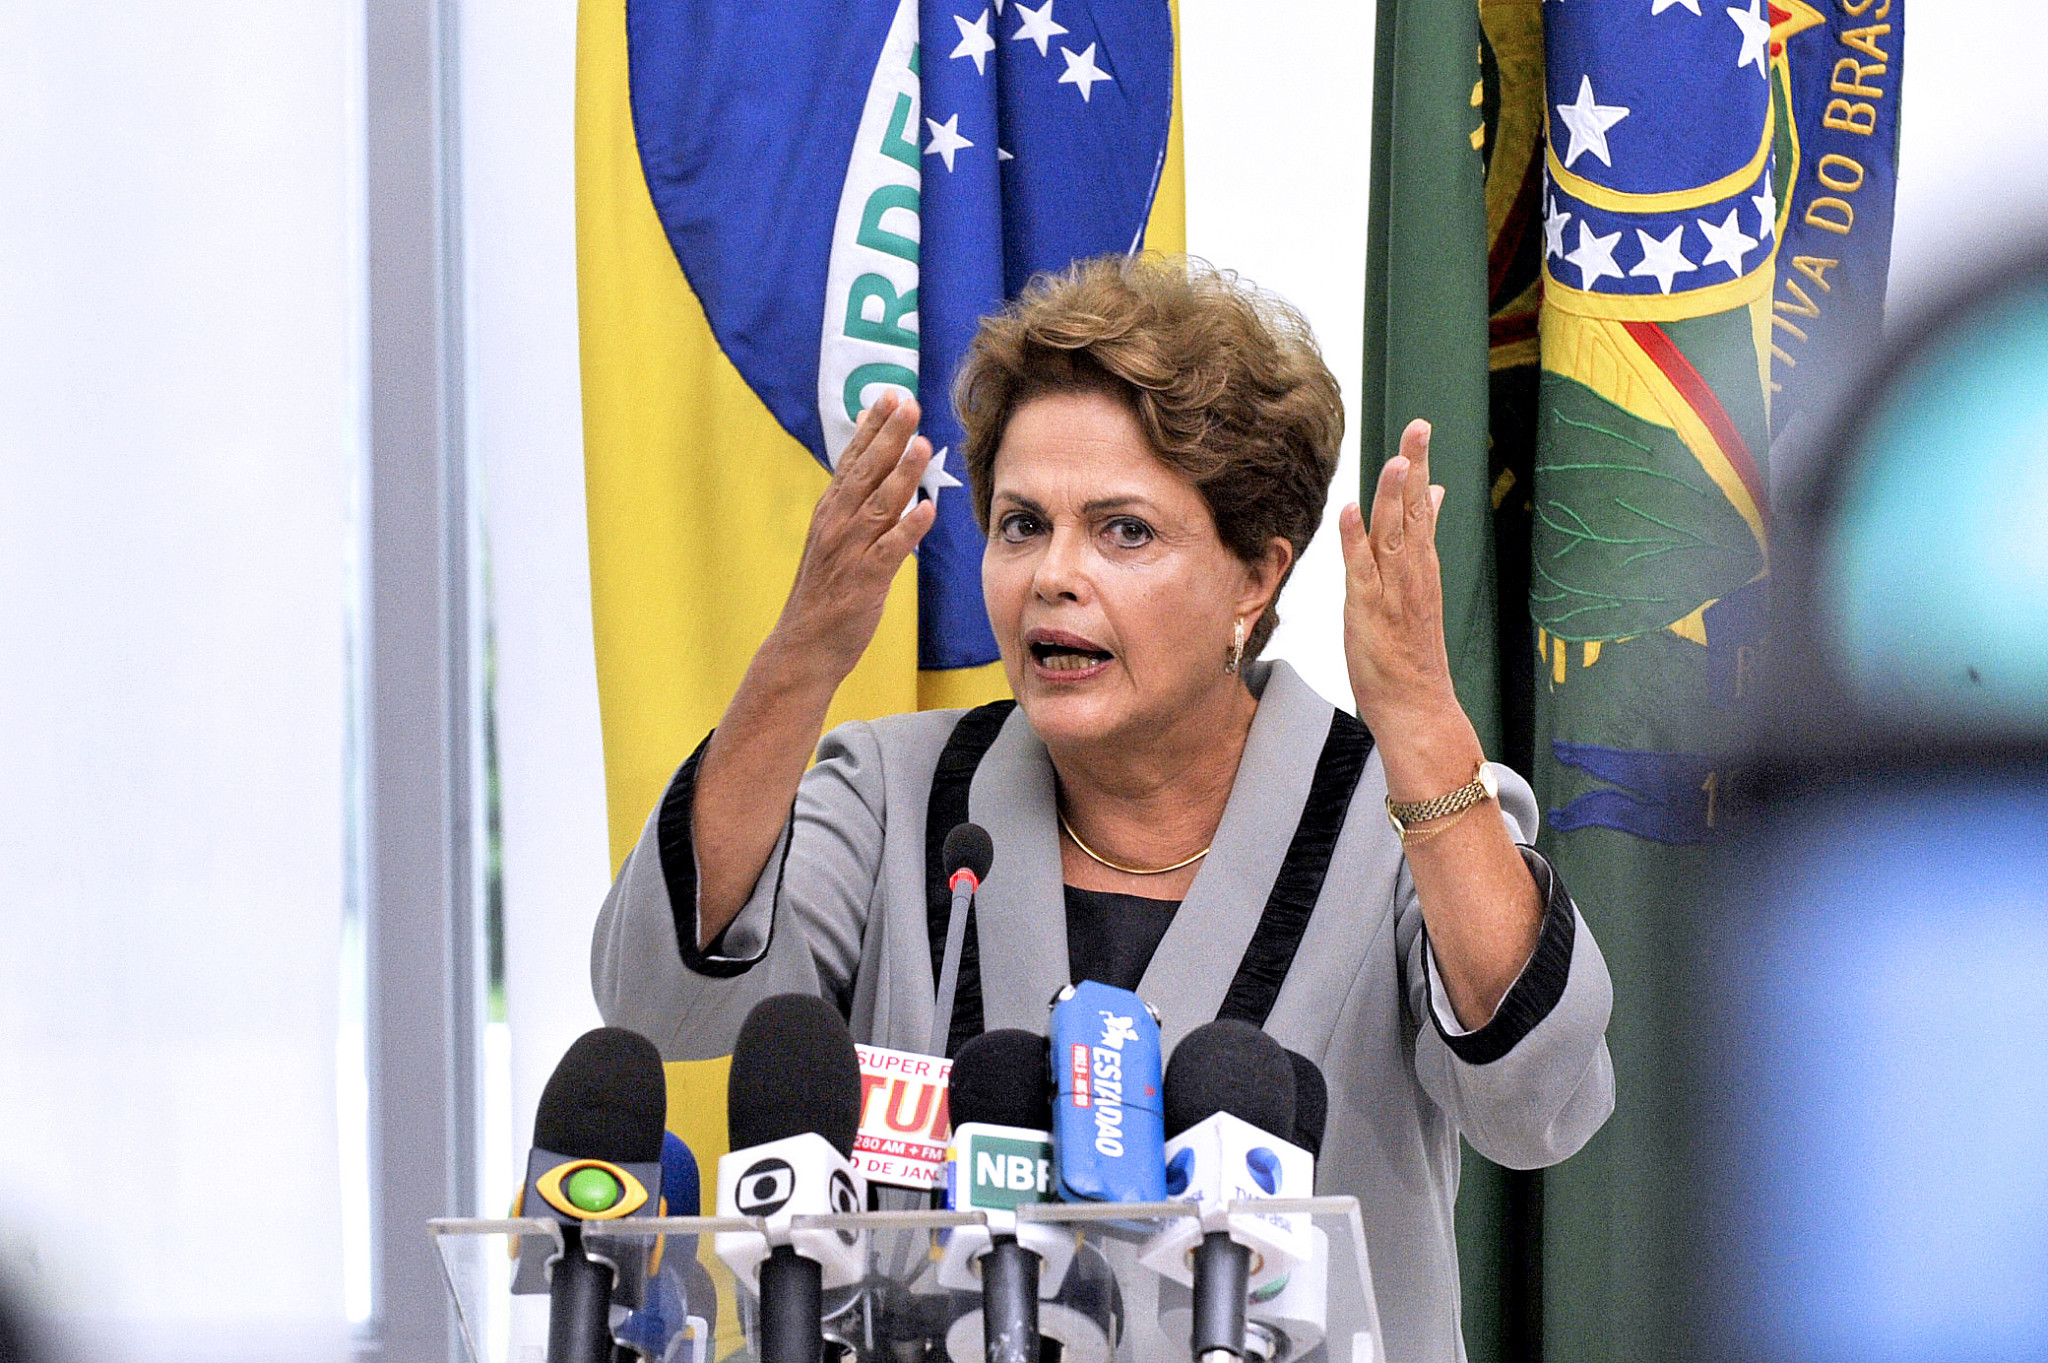 Dilma Rousseff suspended: so what's next for Brazil's frayed and fragmented democracy?